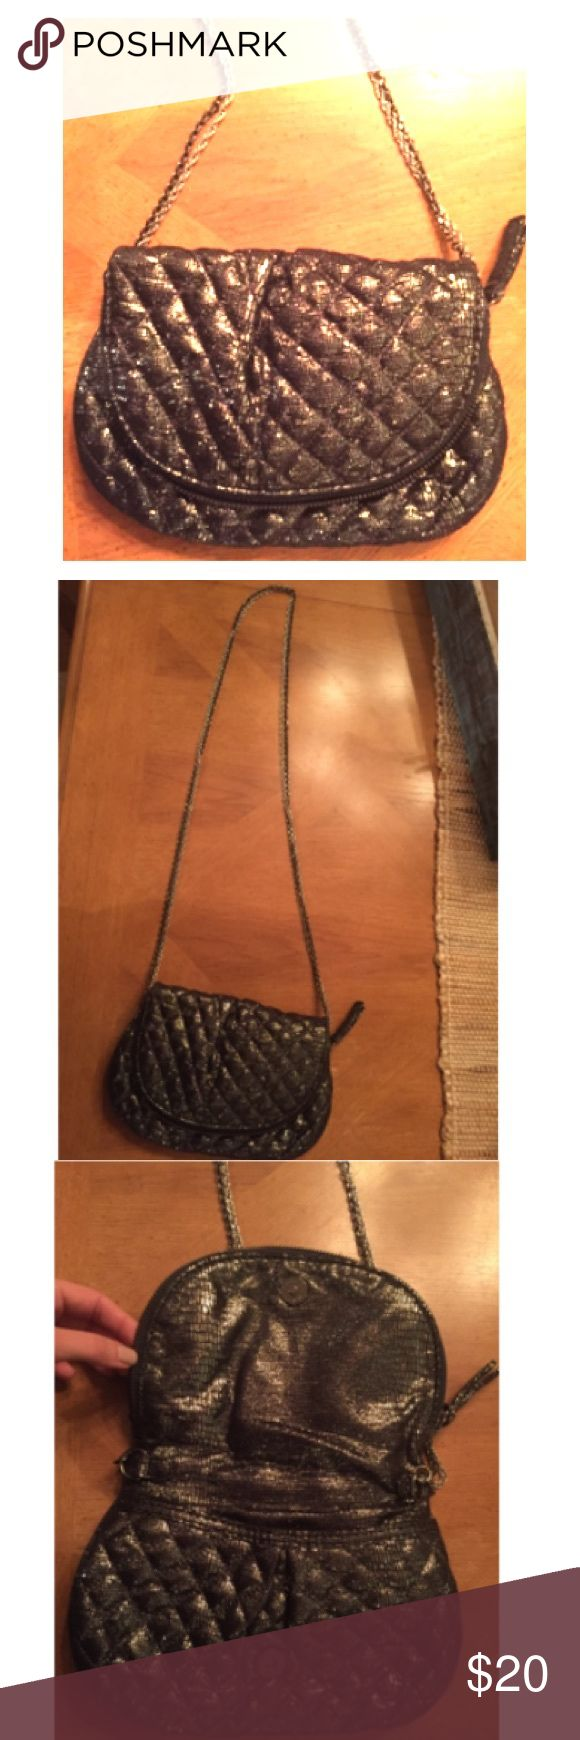 Gorgeous Gap Purse Perfect condition.  Dark metallic grey/silver. Very soft. Long double chain can be worn on shoulder or crossbody. Underneath the snap is a Front pocket, flap opens up to full size purse with zipper. GAP Bags Crossbody Bags